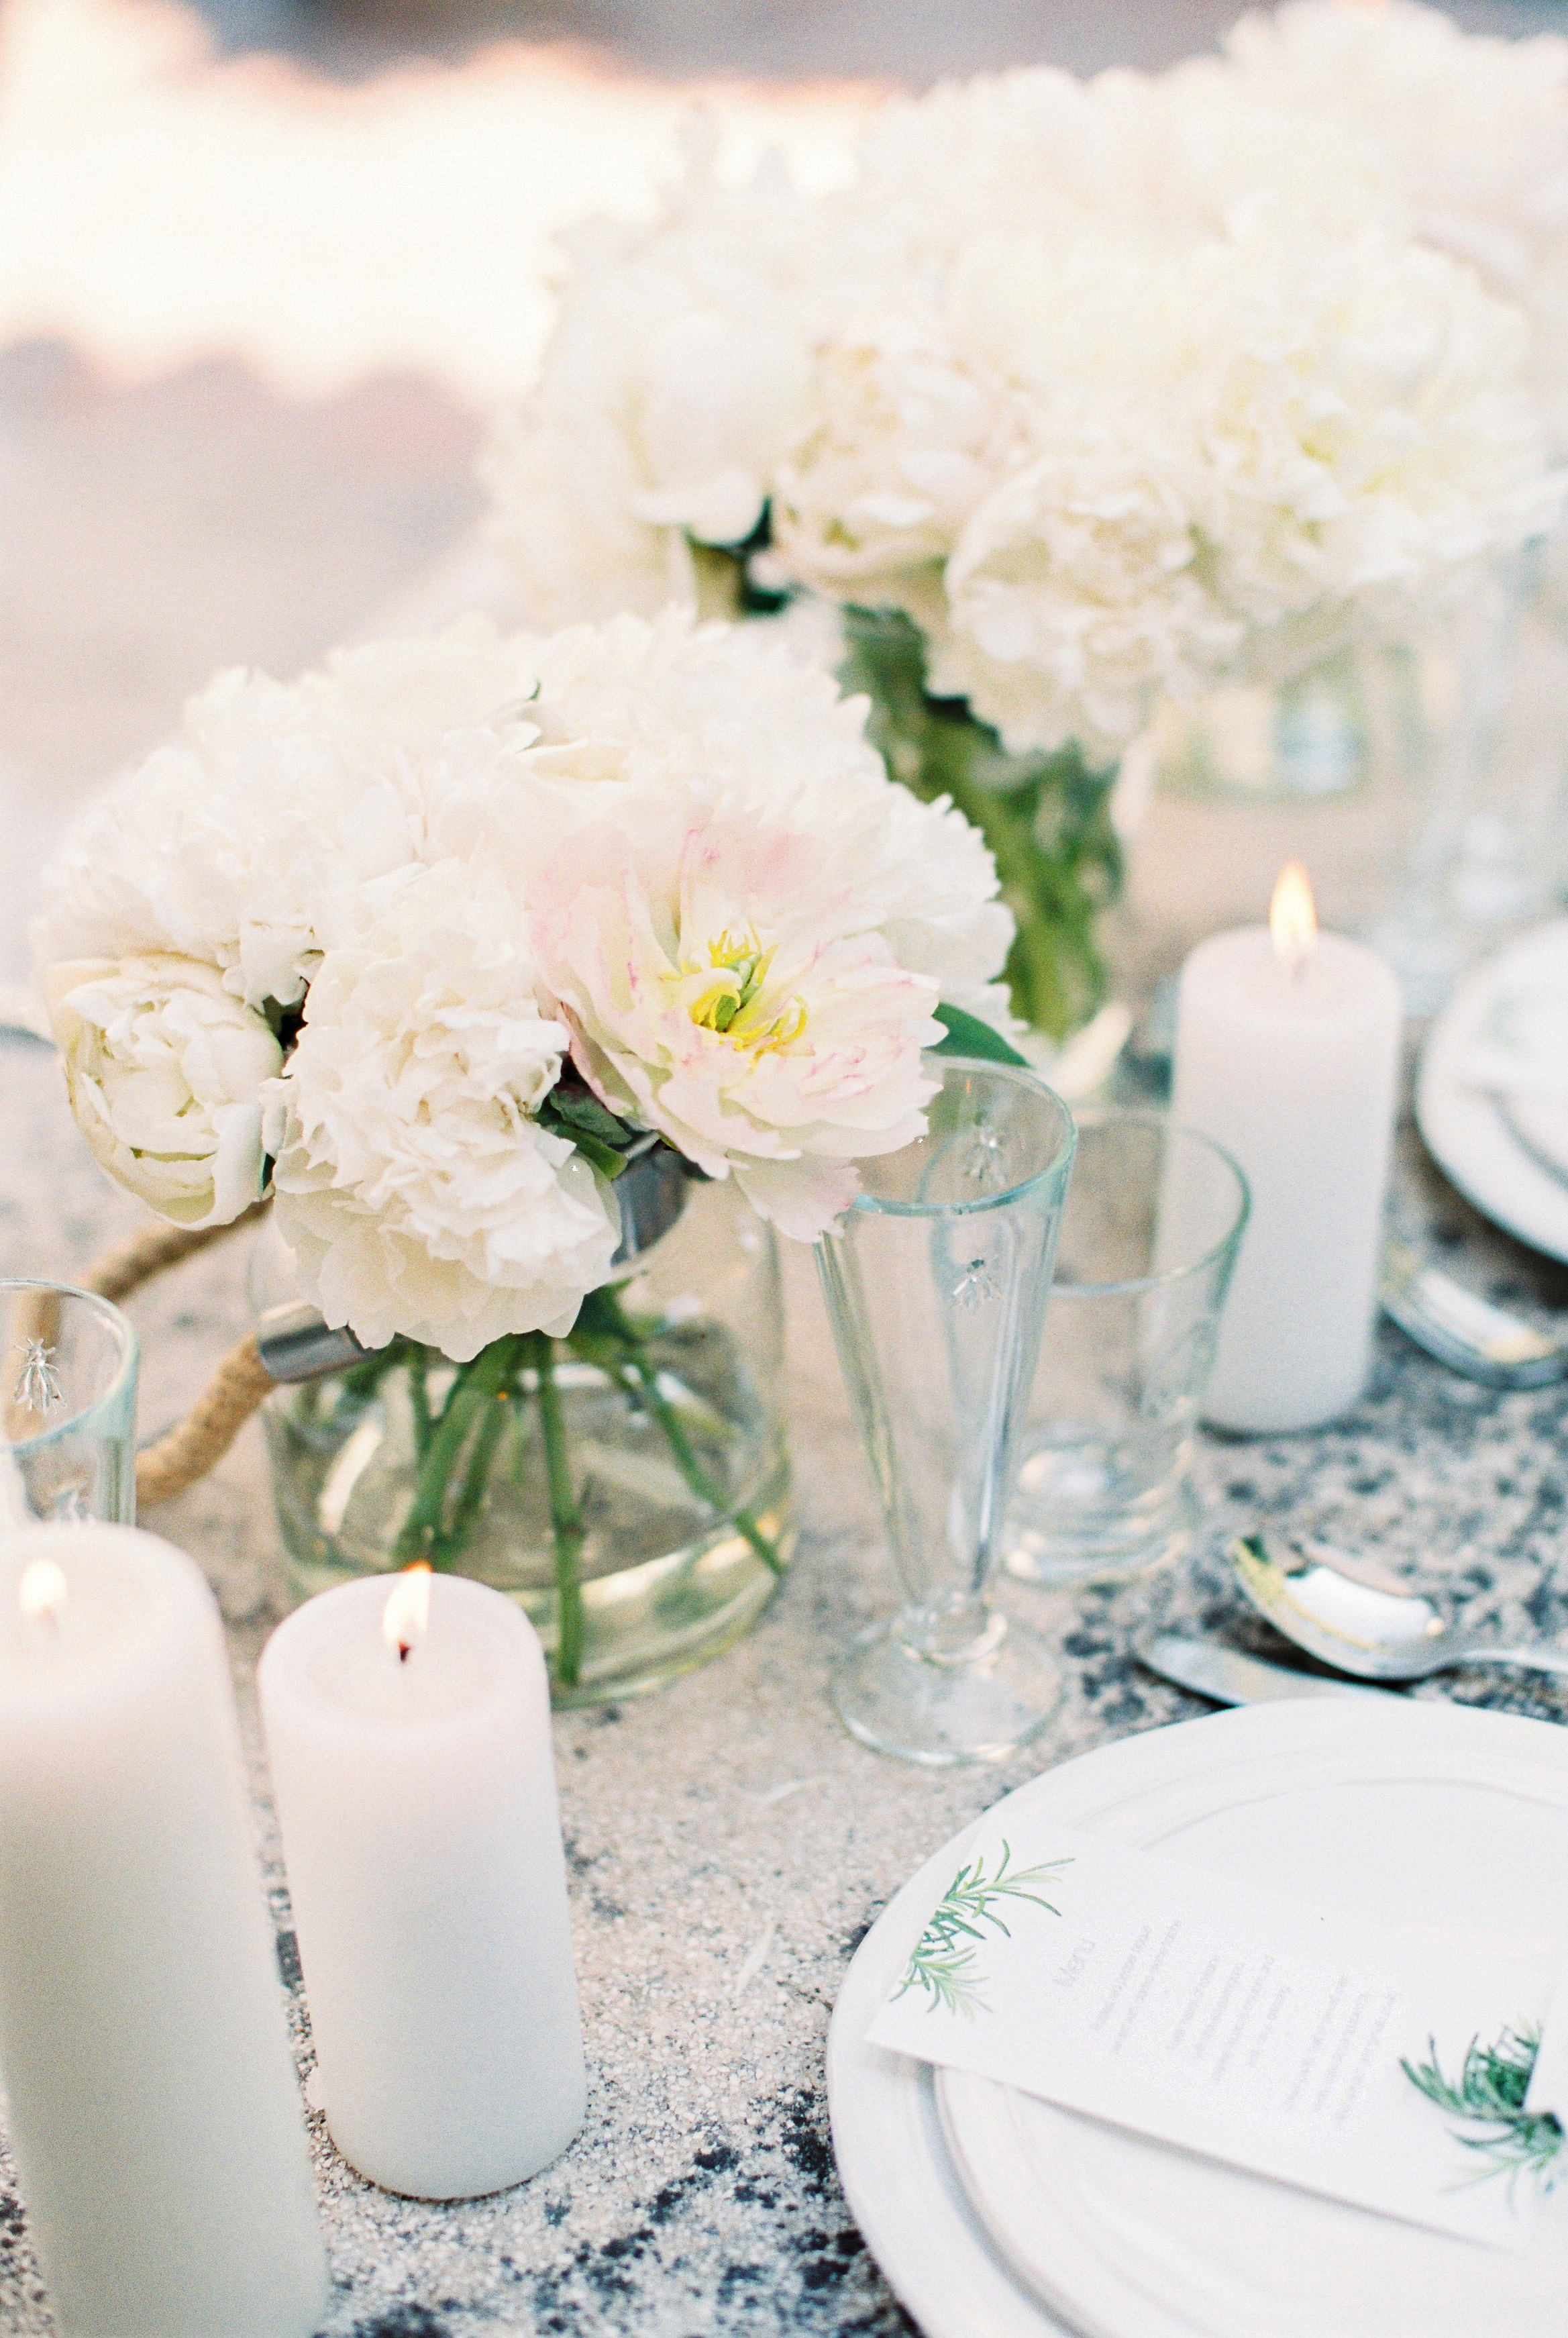 White Cluster Centerpieces with Peonies